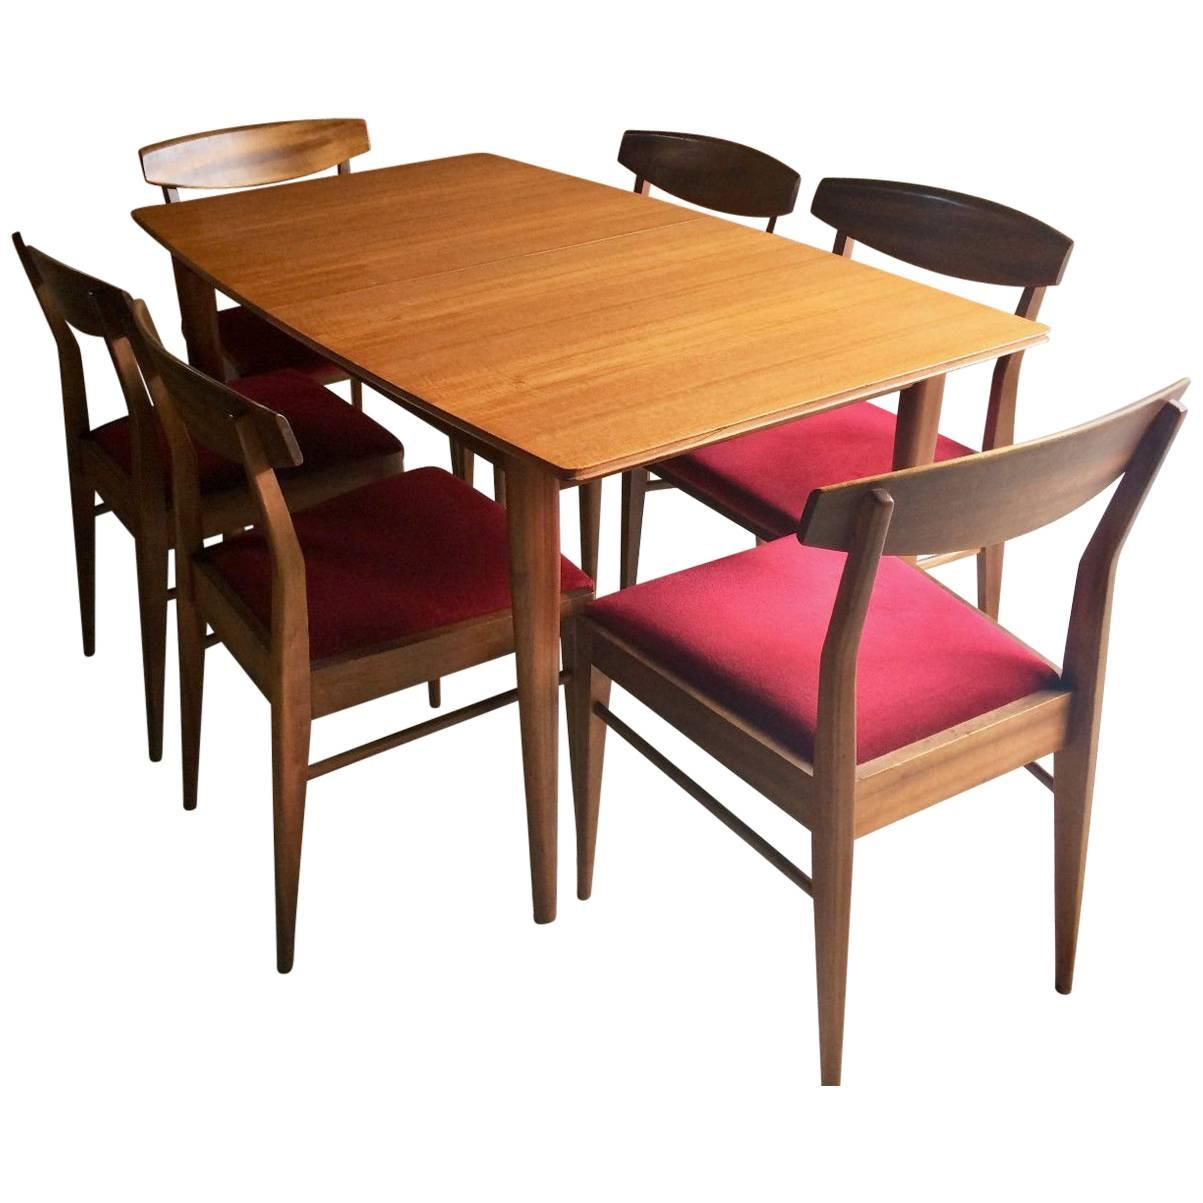 A H McIntosh Solid Teak Extending Dining Table And Six Chairs Danish Style